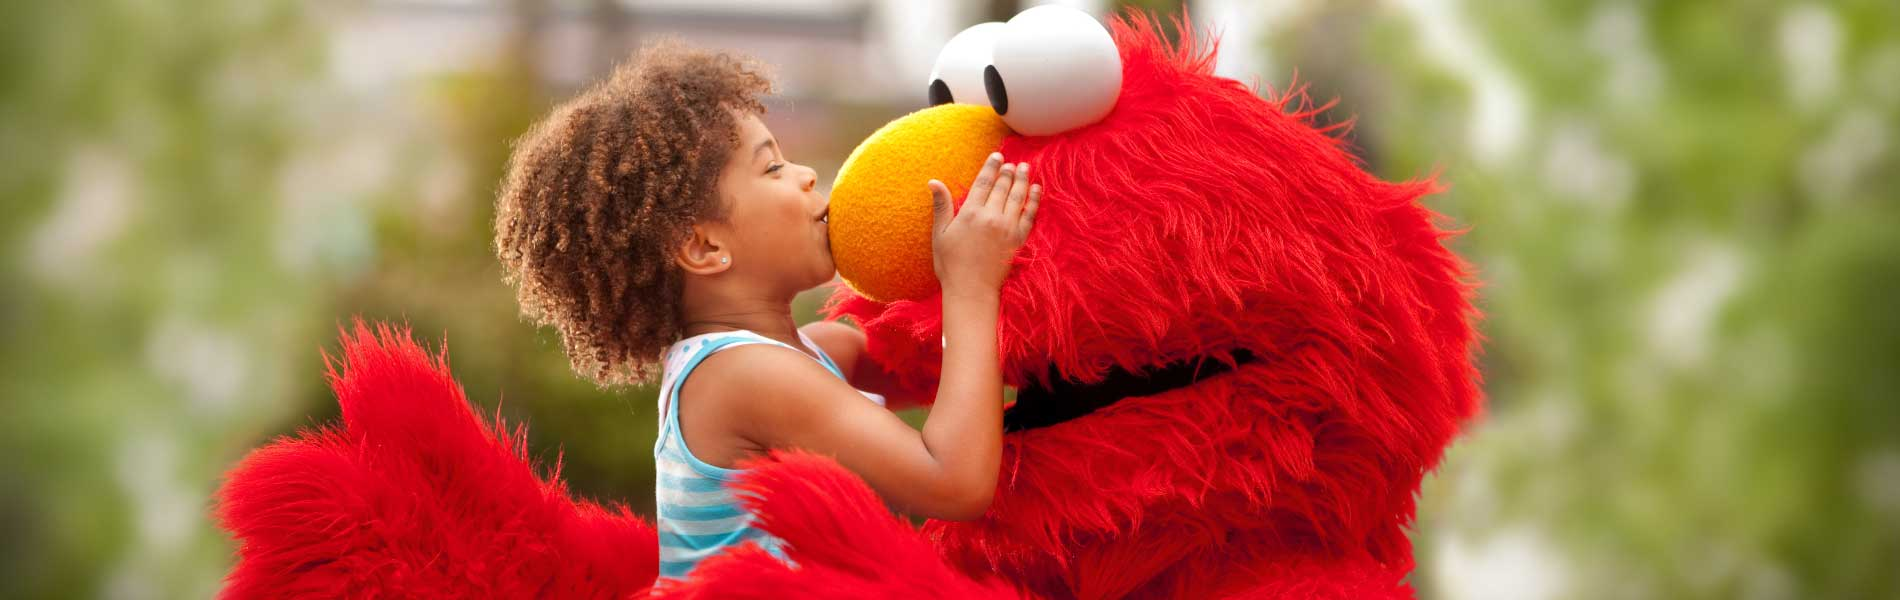 Elmo gets kissed on the nose by a young girl at Sesame Place theme park